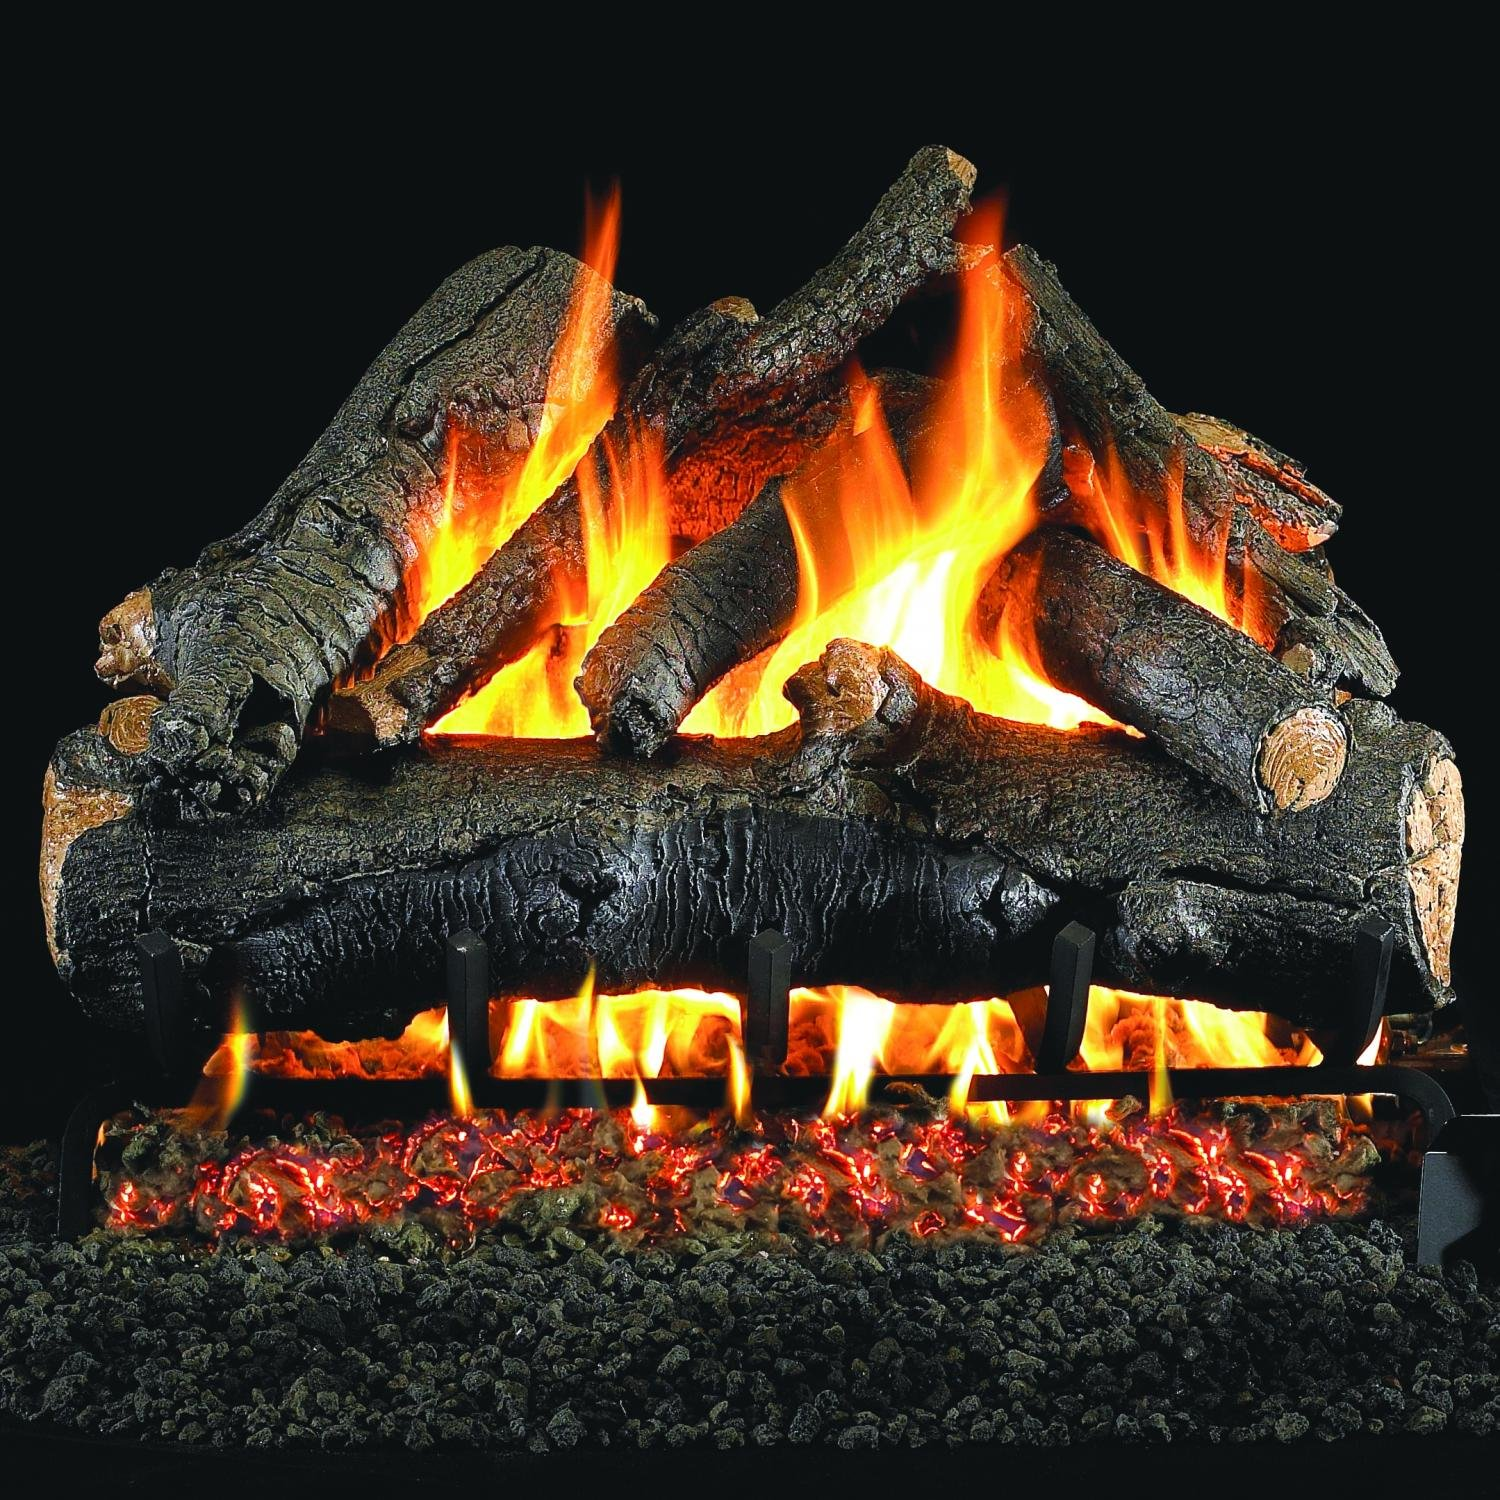 Peterson Real Fyre 30-inch American Oak Gas Log Set With Vented Natural Gas G45 Burner - Match Light by Peterson Real Fyre